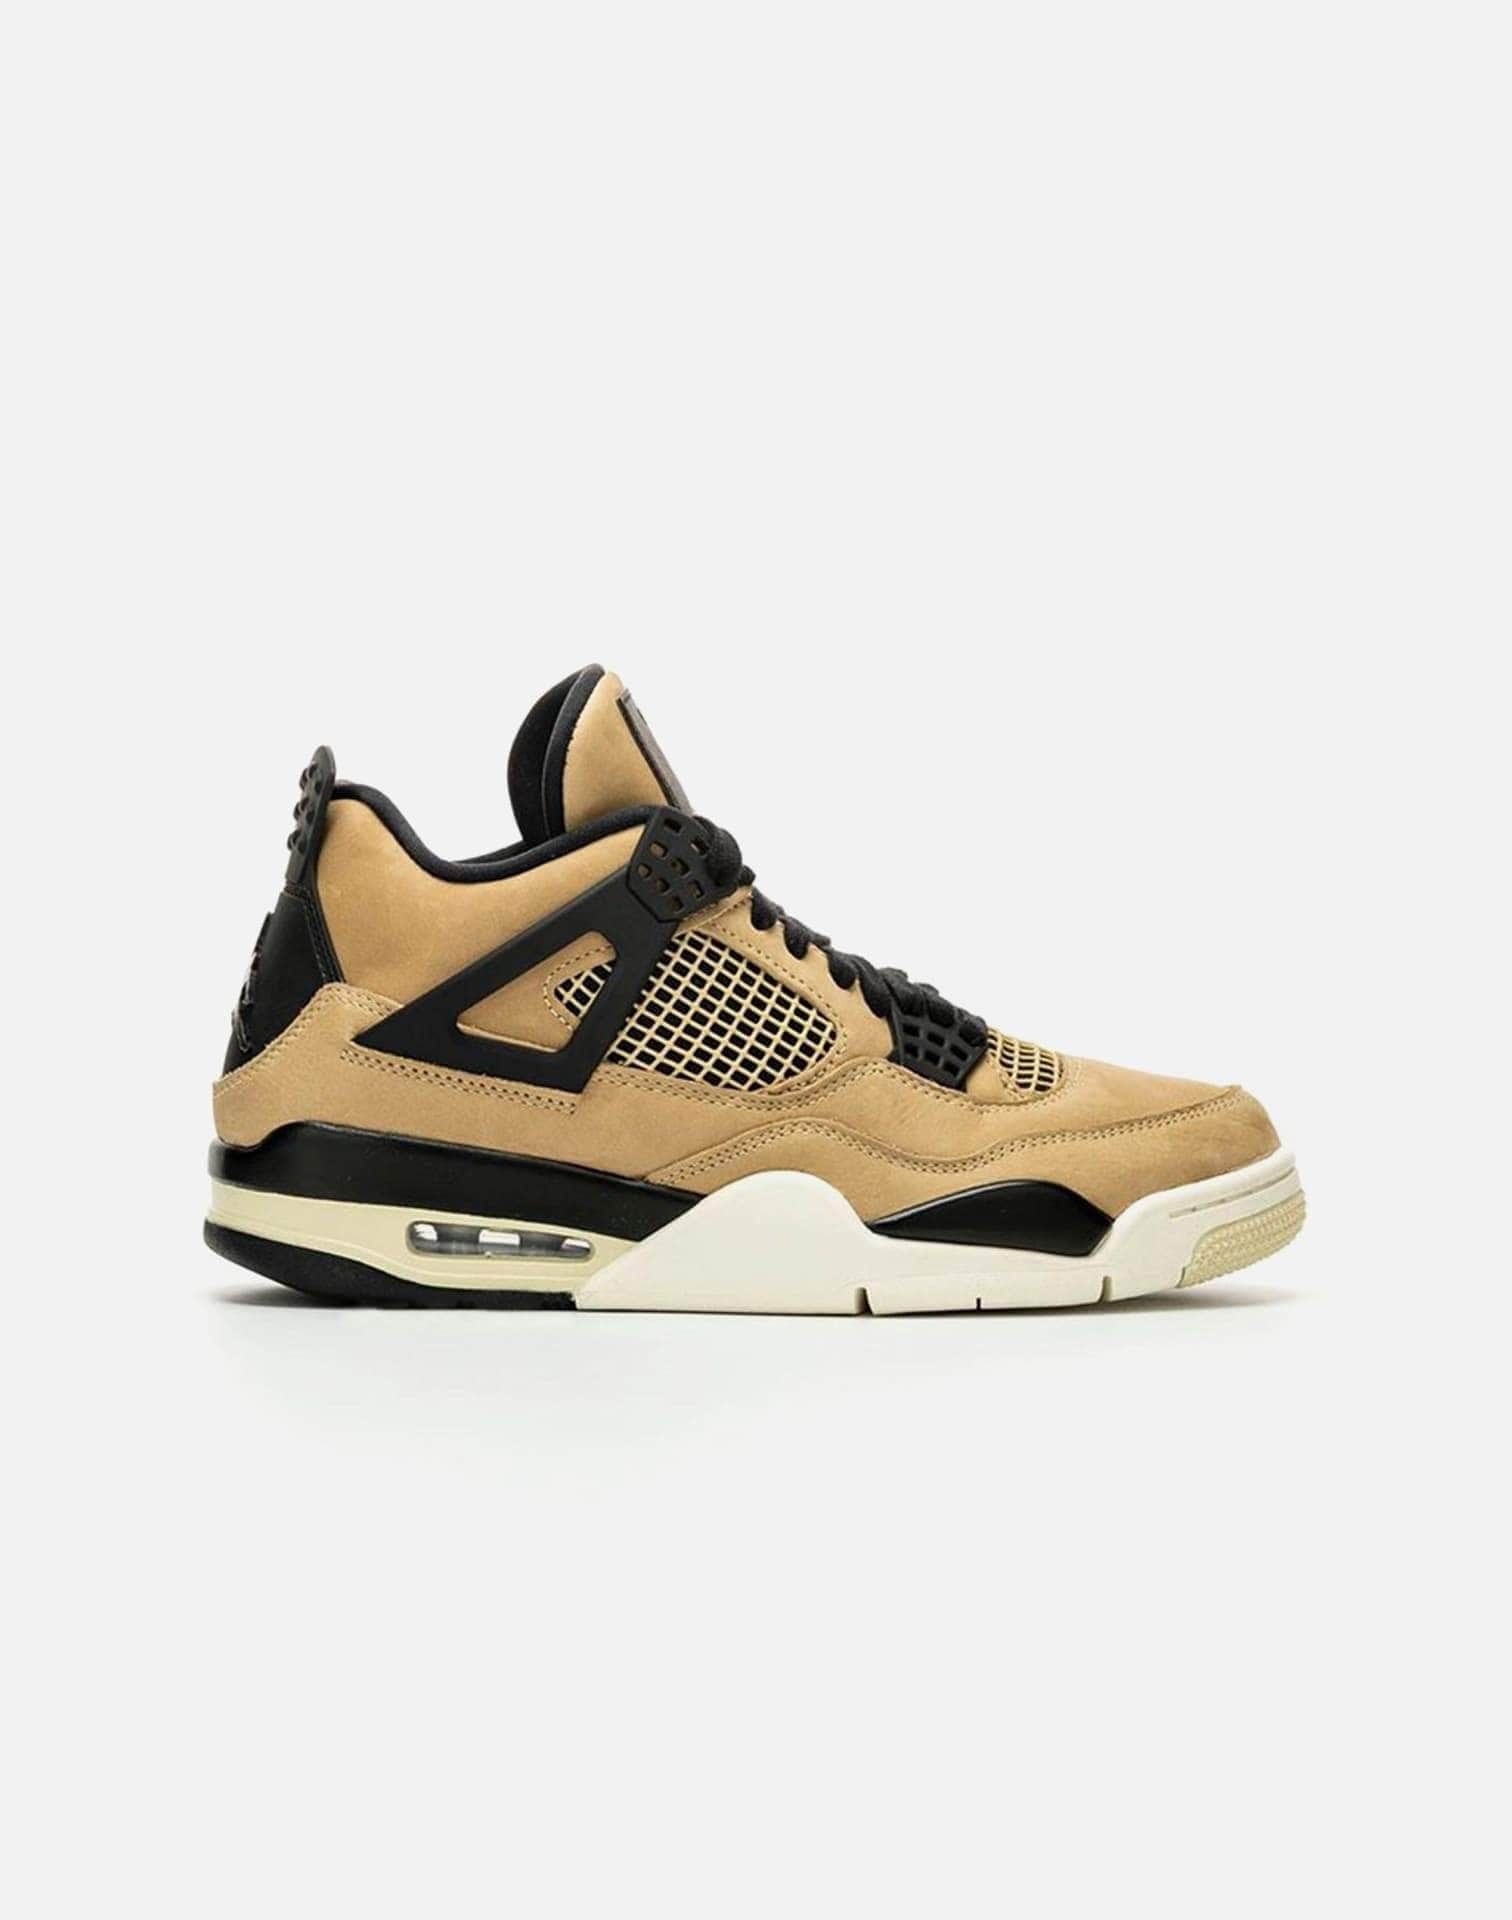 Jordan Women's Air Jordan Retro 4 'Mushroom'